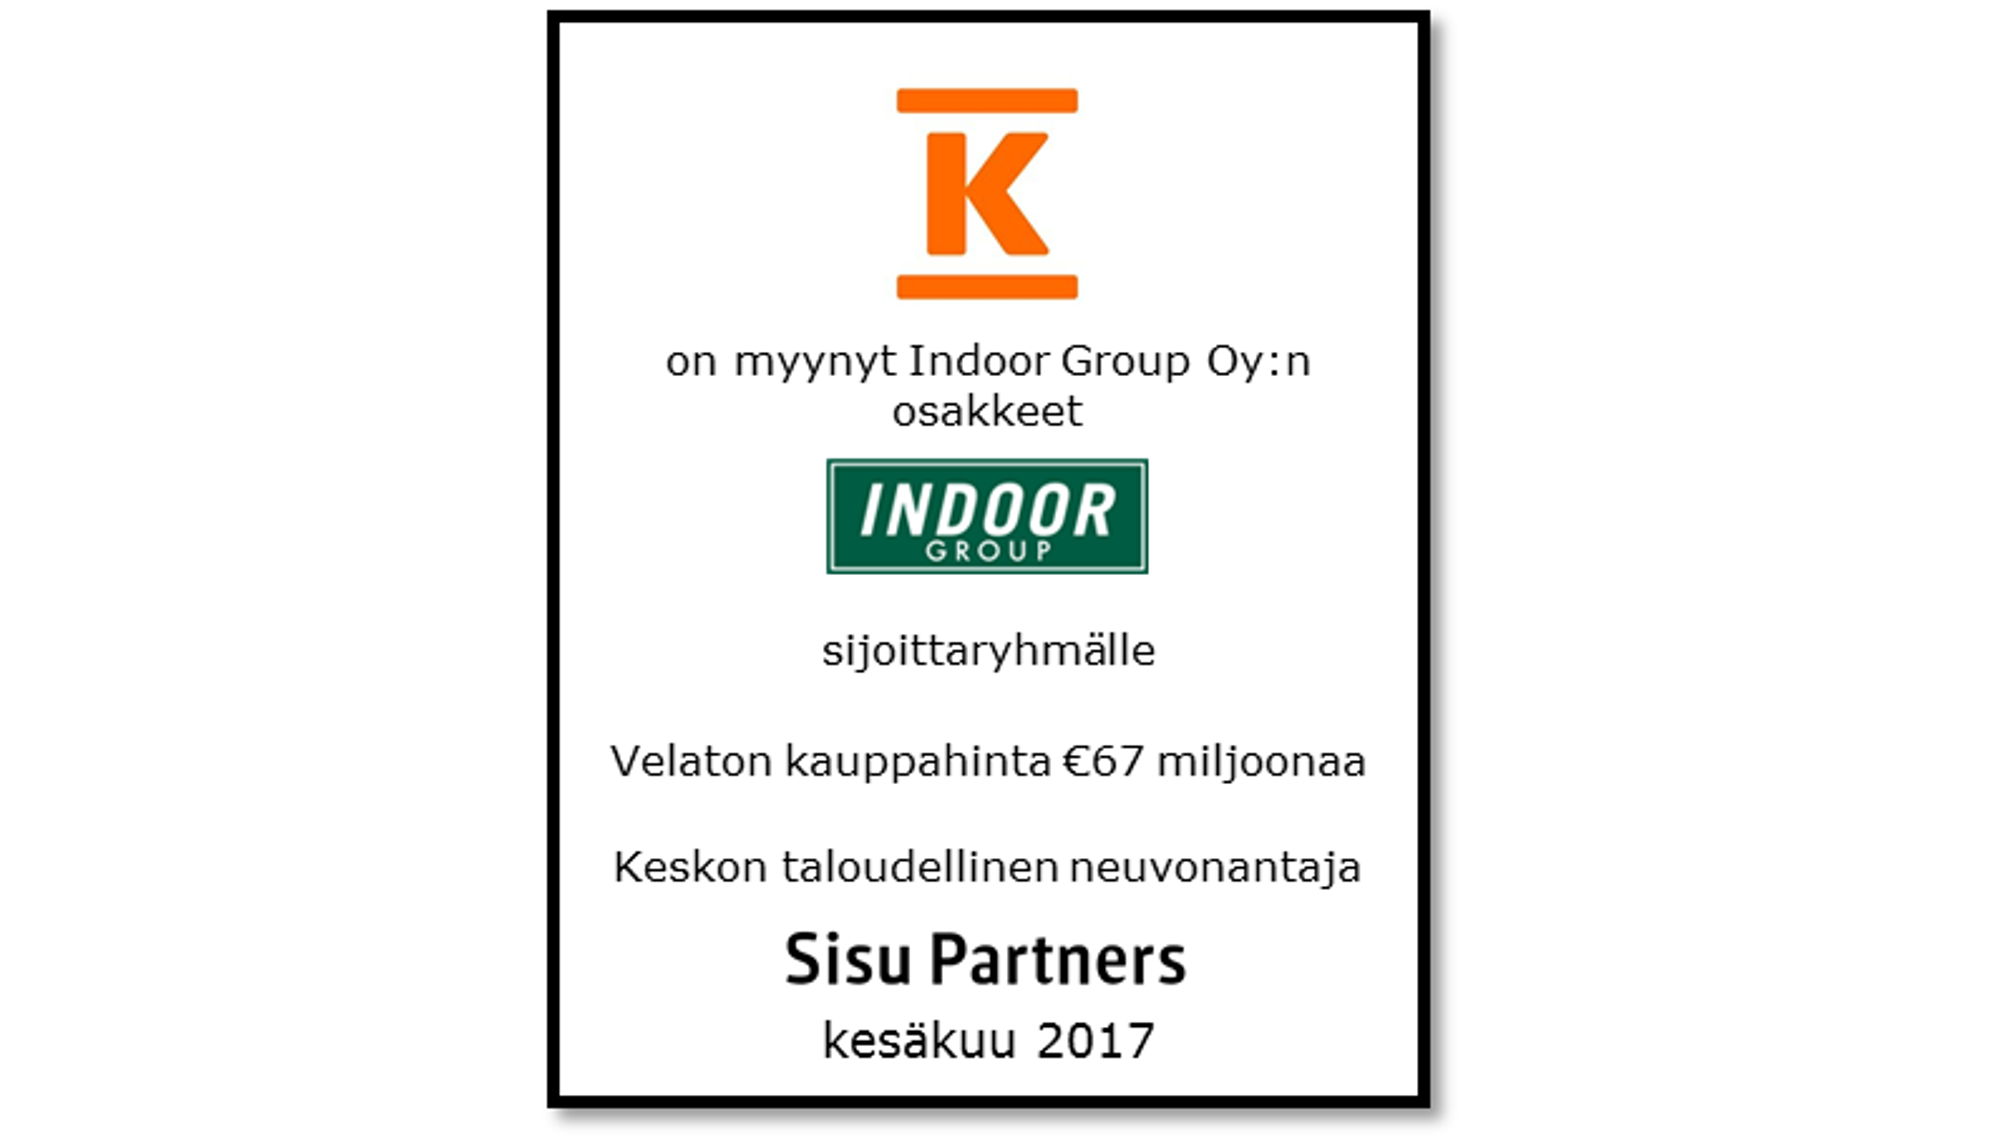 Kesko - Indoor Group fin